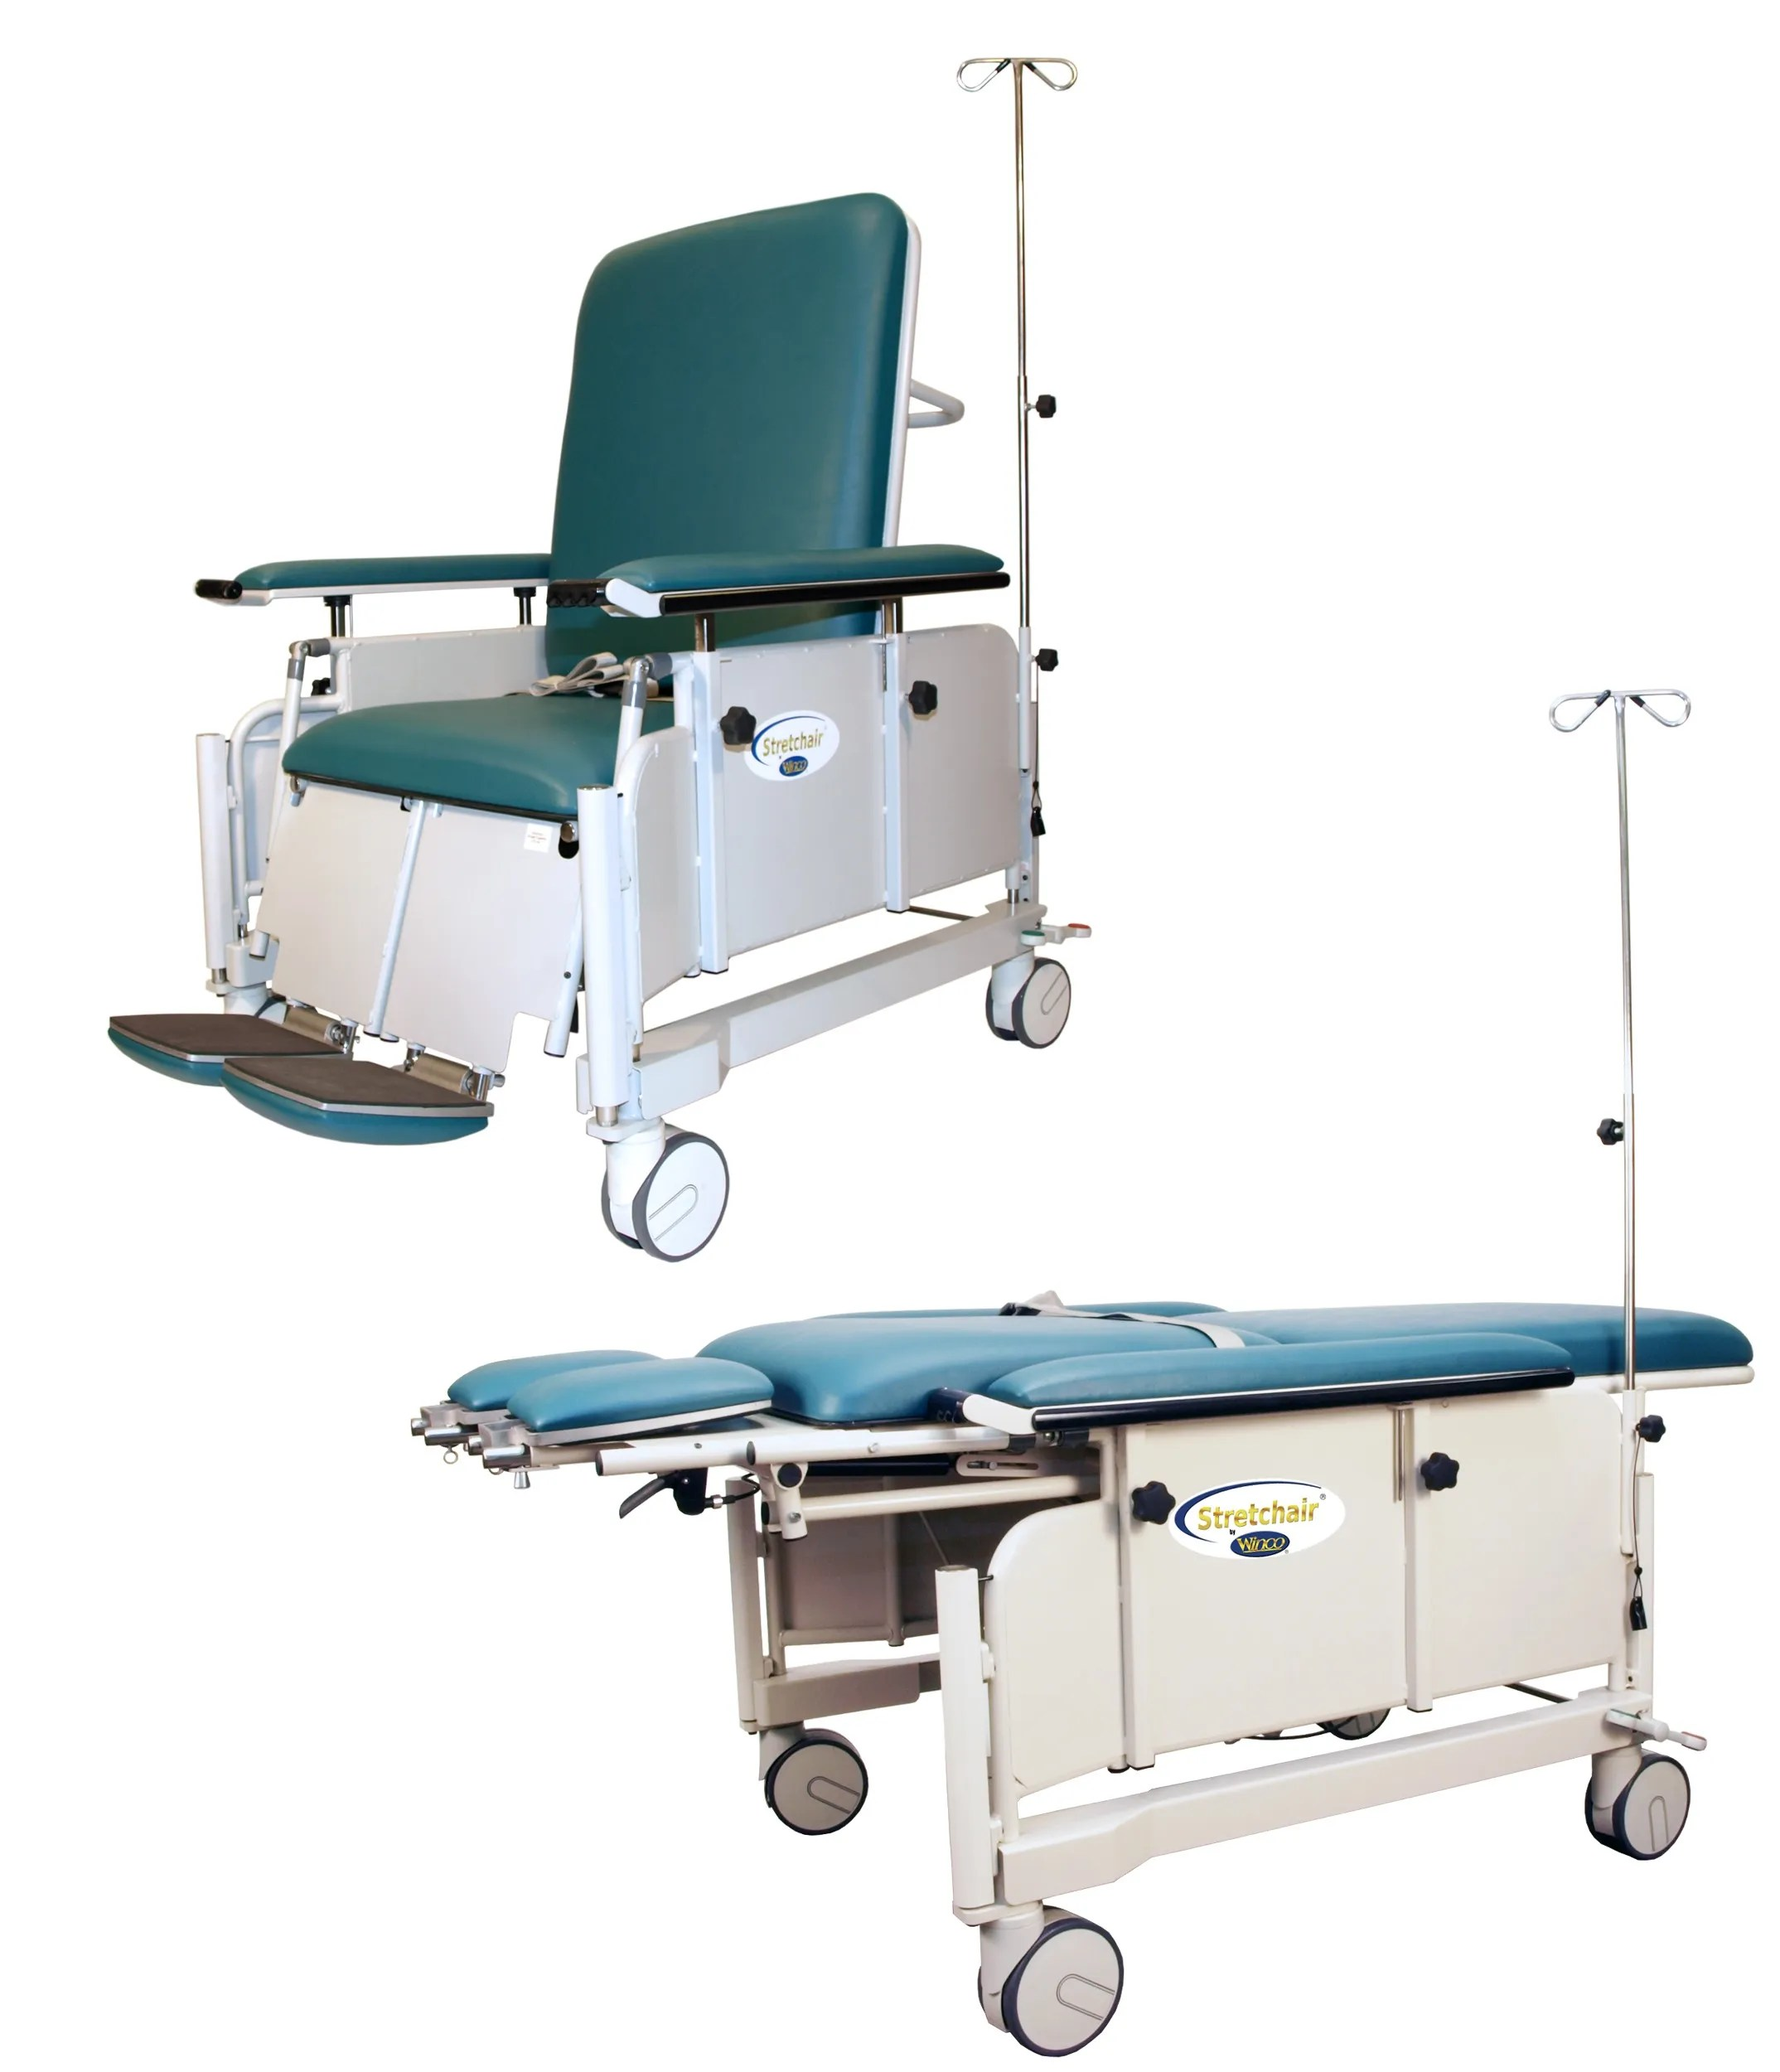 Stretcher Chair Stretcher Chair Exam Tables Cme Corp